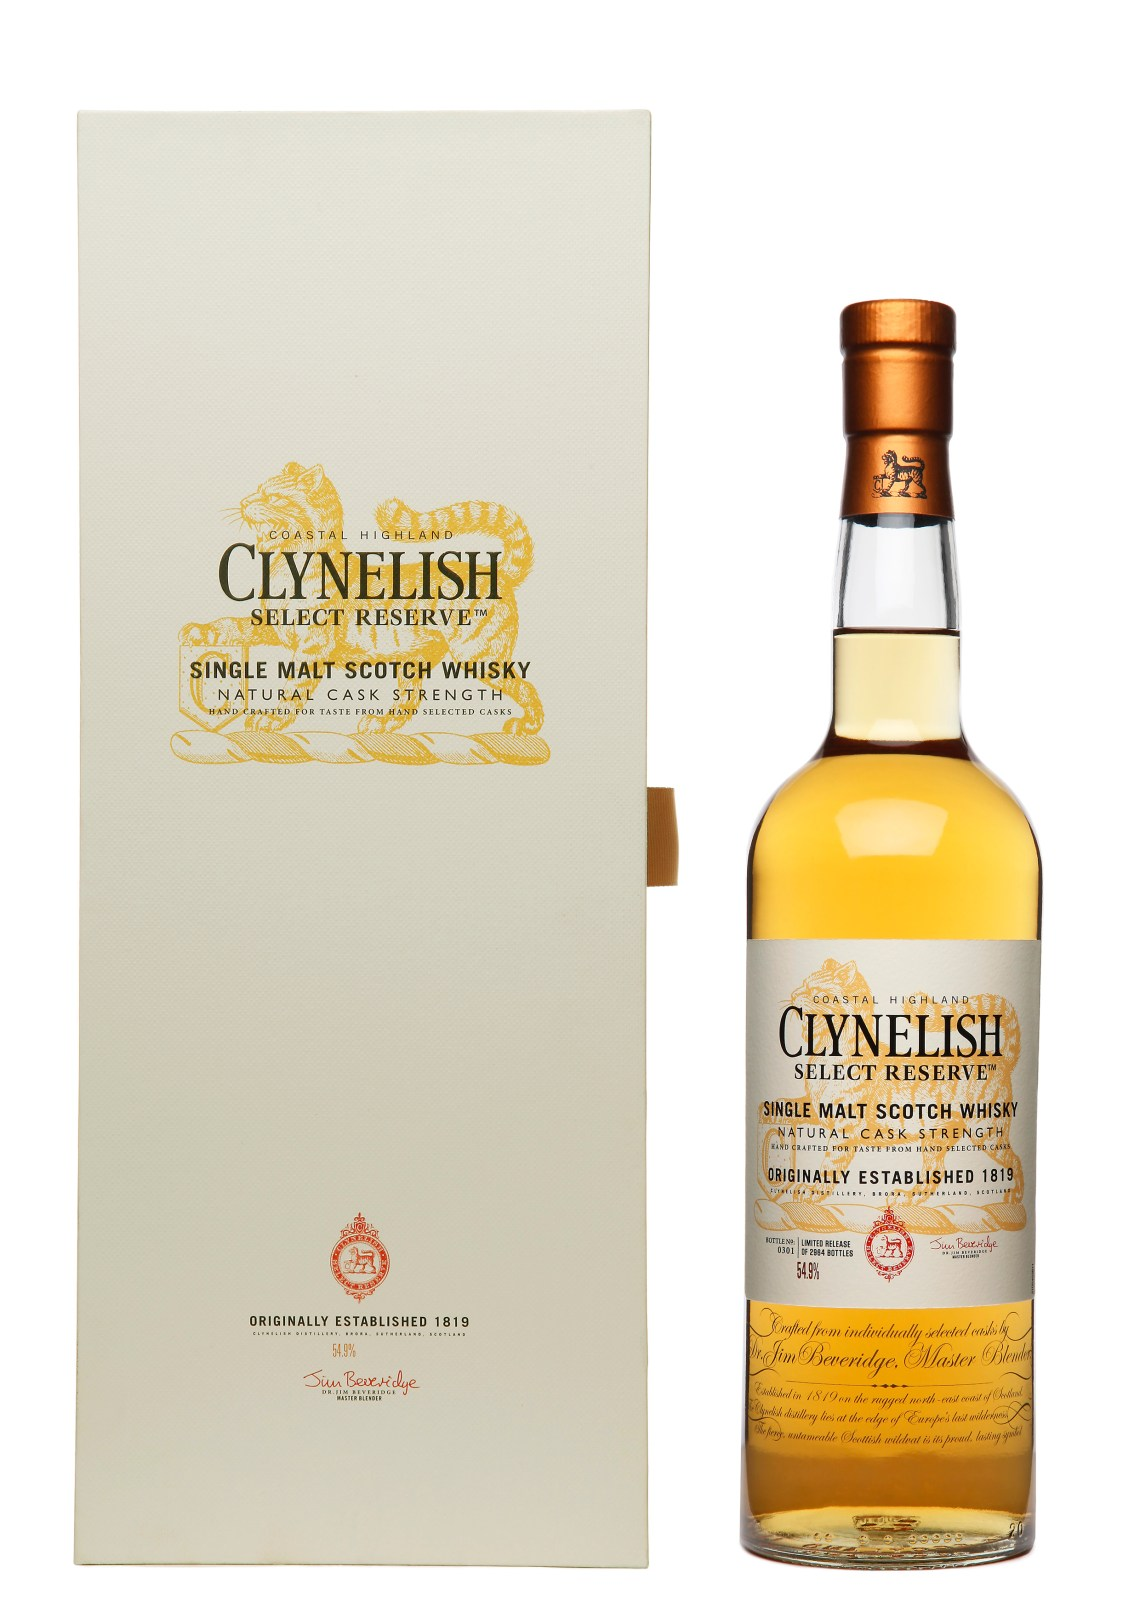 Clynelish Select Reserve Limited Edition 2014